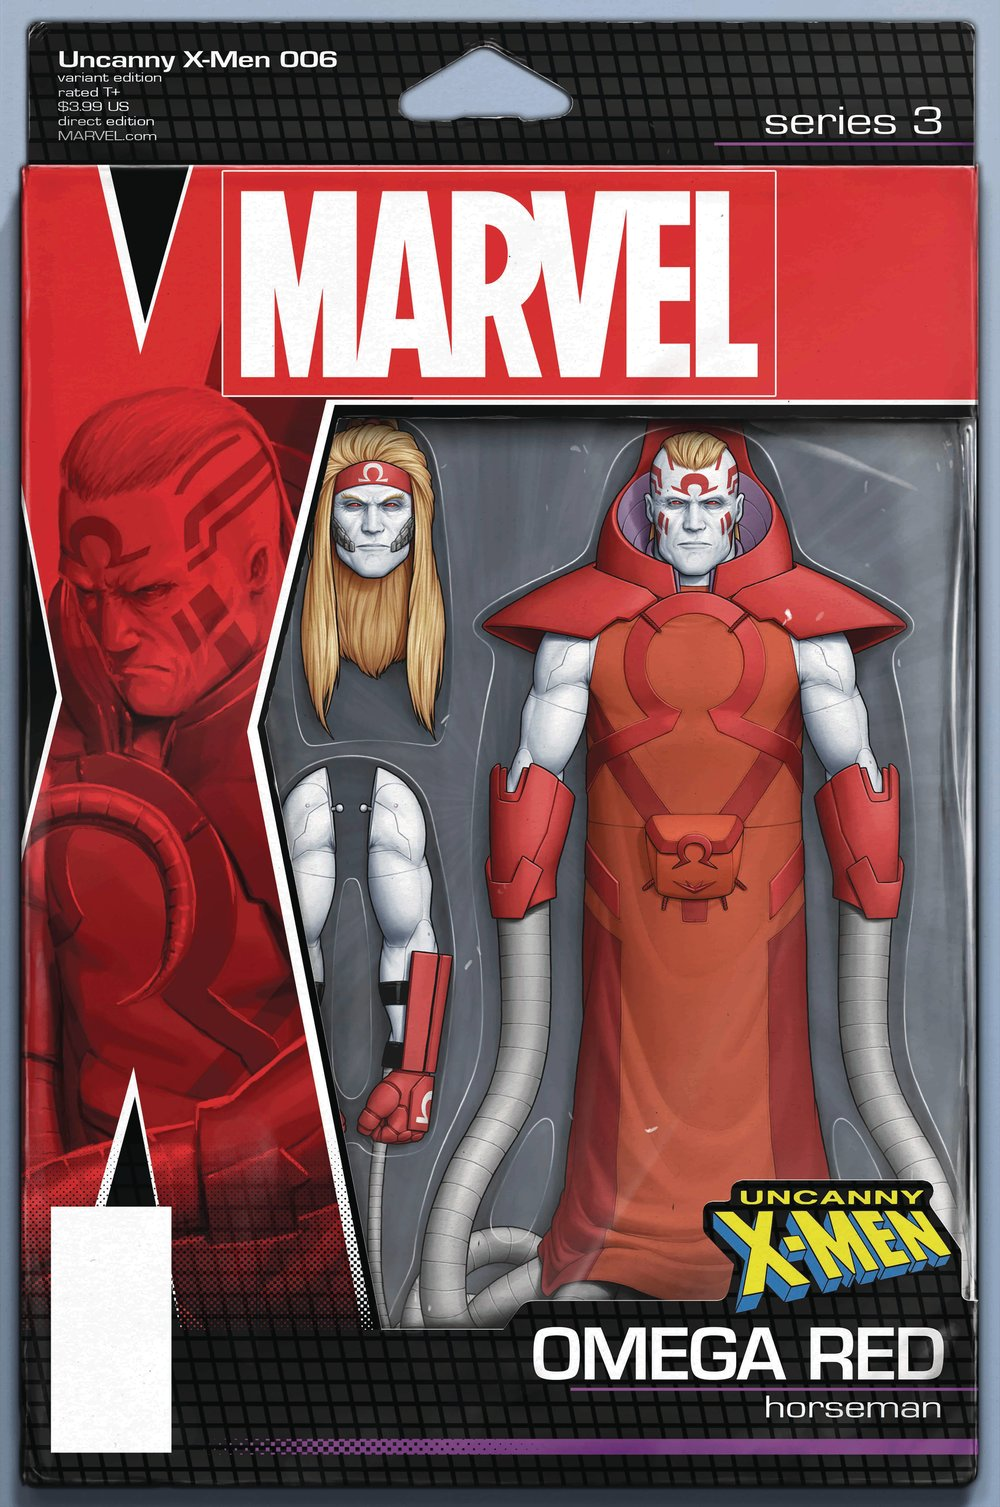 UNCANNY X-MEN 6 CHRISTOPHER ACTION FIGURE VAR.jpg